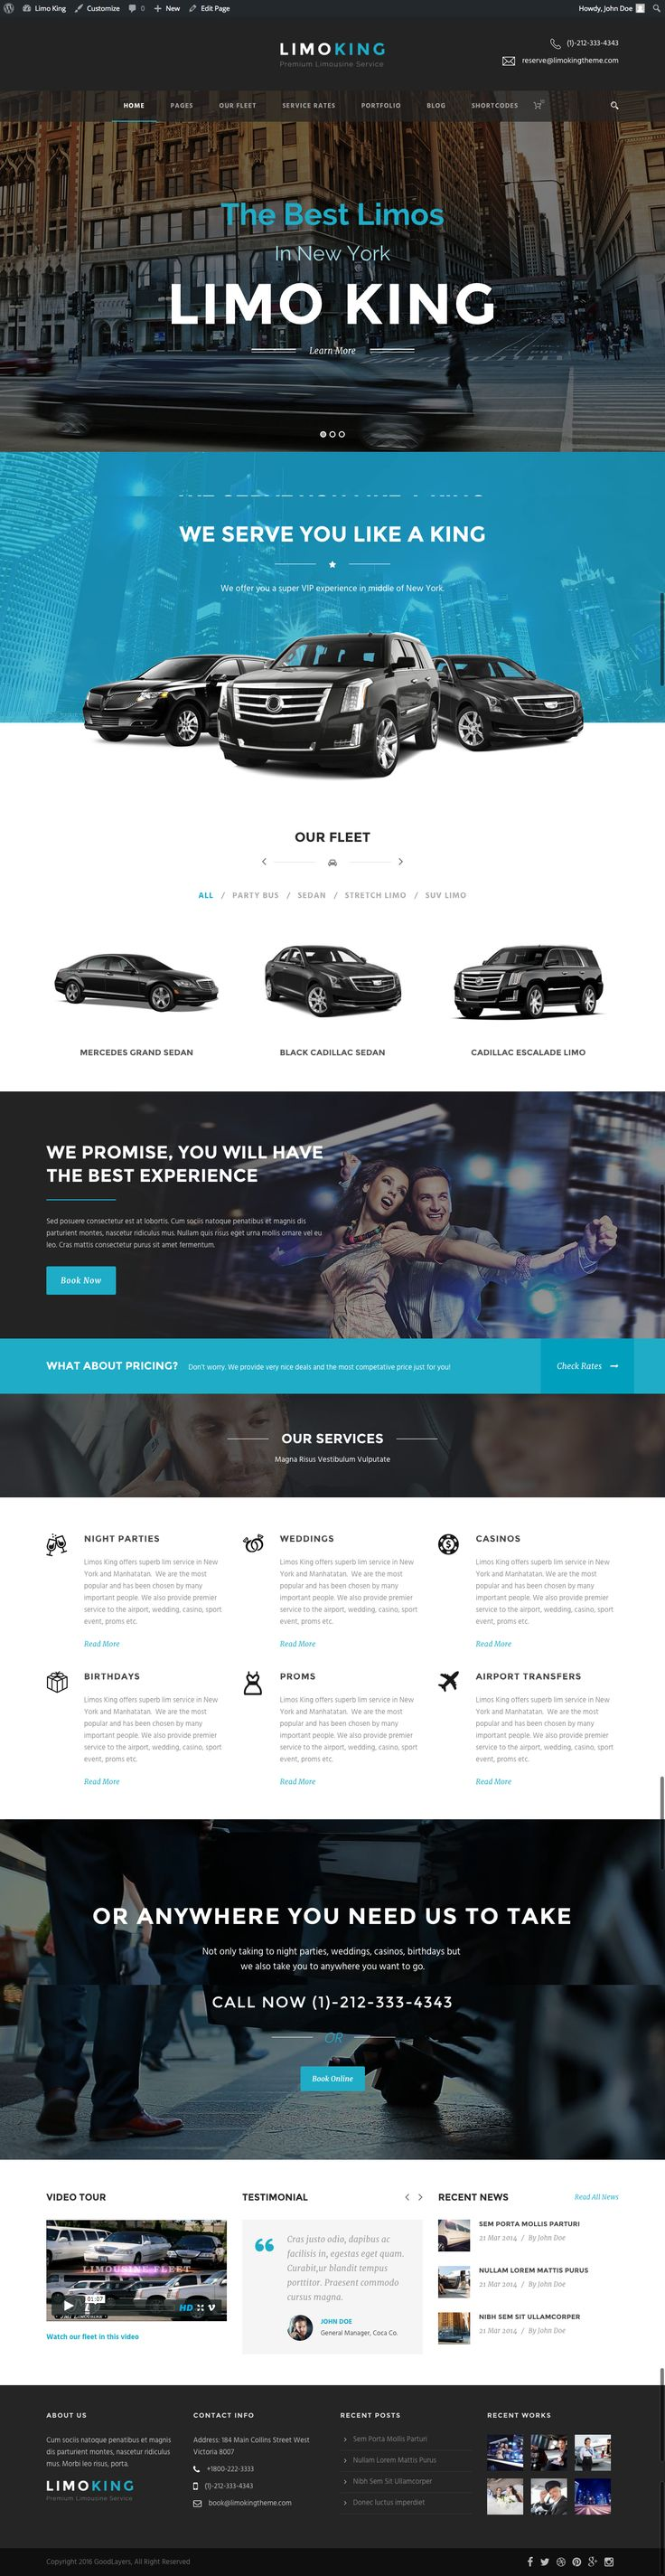 Limo King is a responsive WordPress theme for Limousine, Limo service, Car hire company, Bus, Coach, Taxi, Airport transfer service.. This theme comes with well designed limo fleet layout, flee...